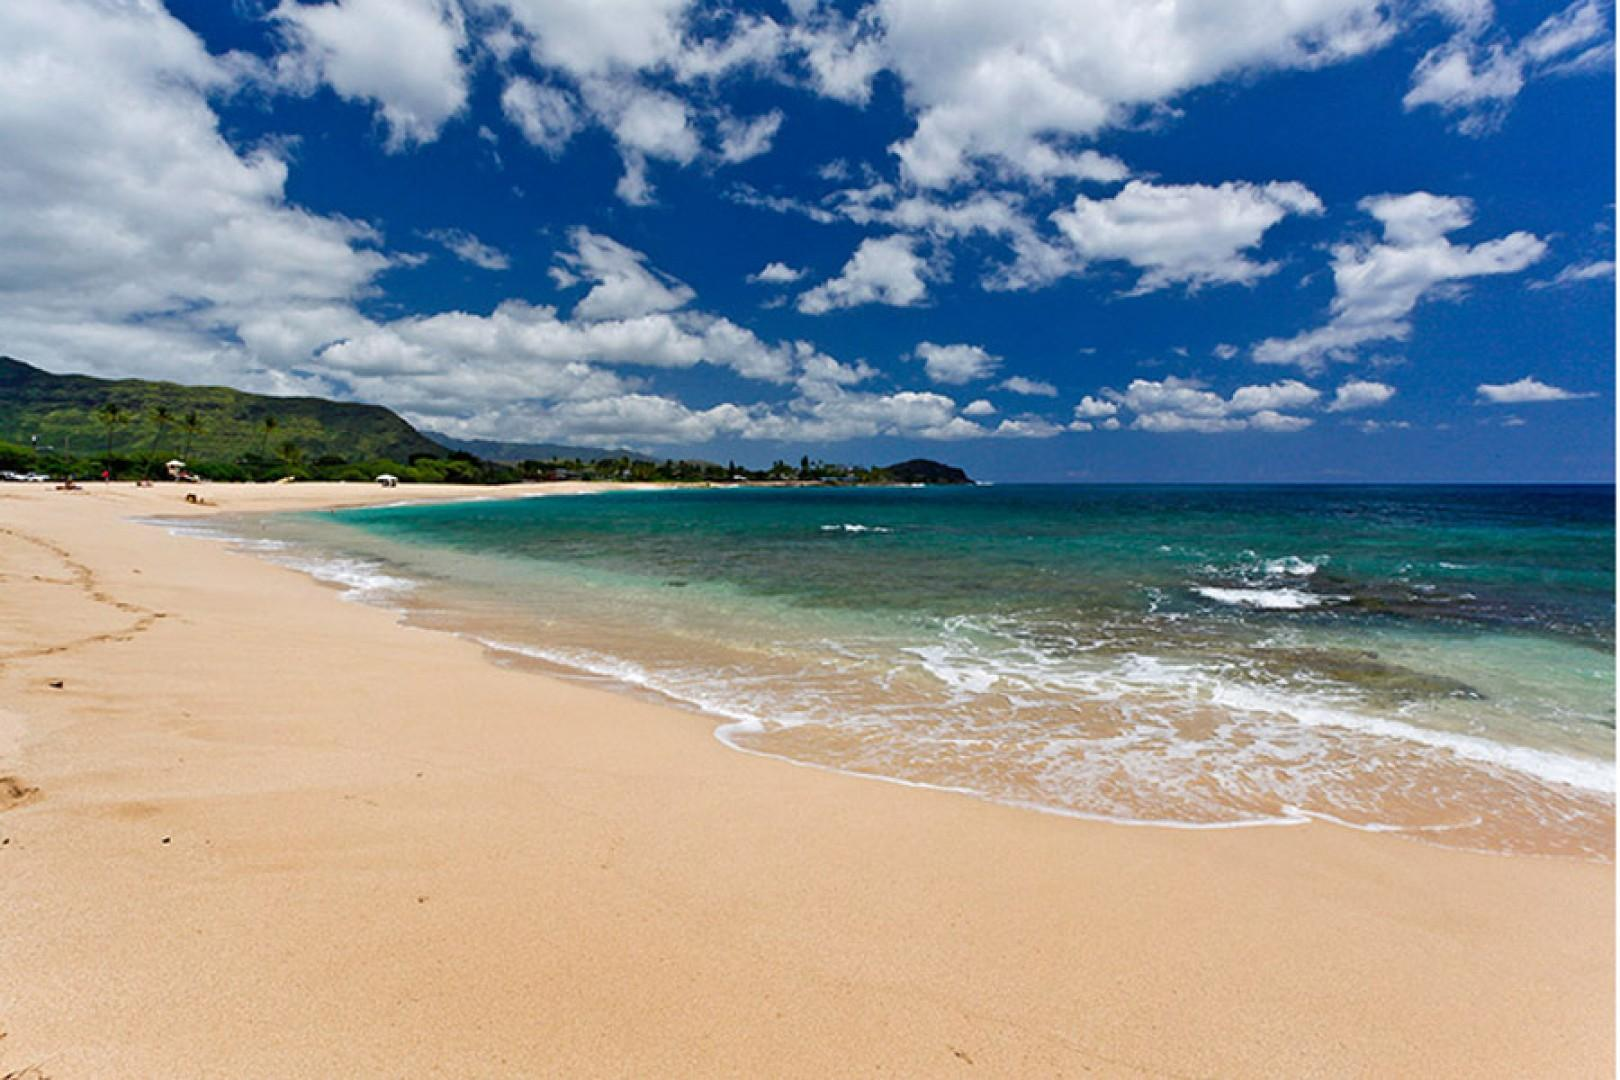 Makaha Beach Park, located just over a half mile from the house.